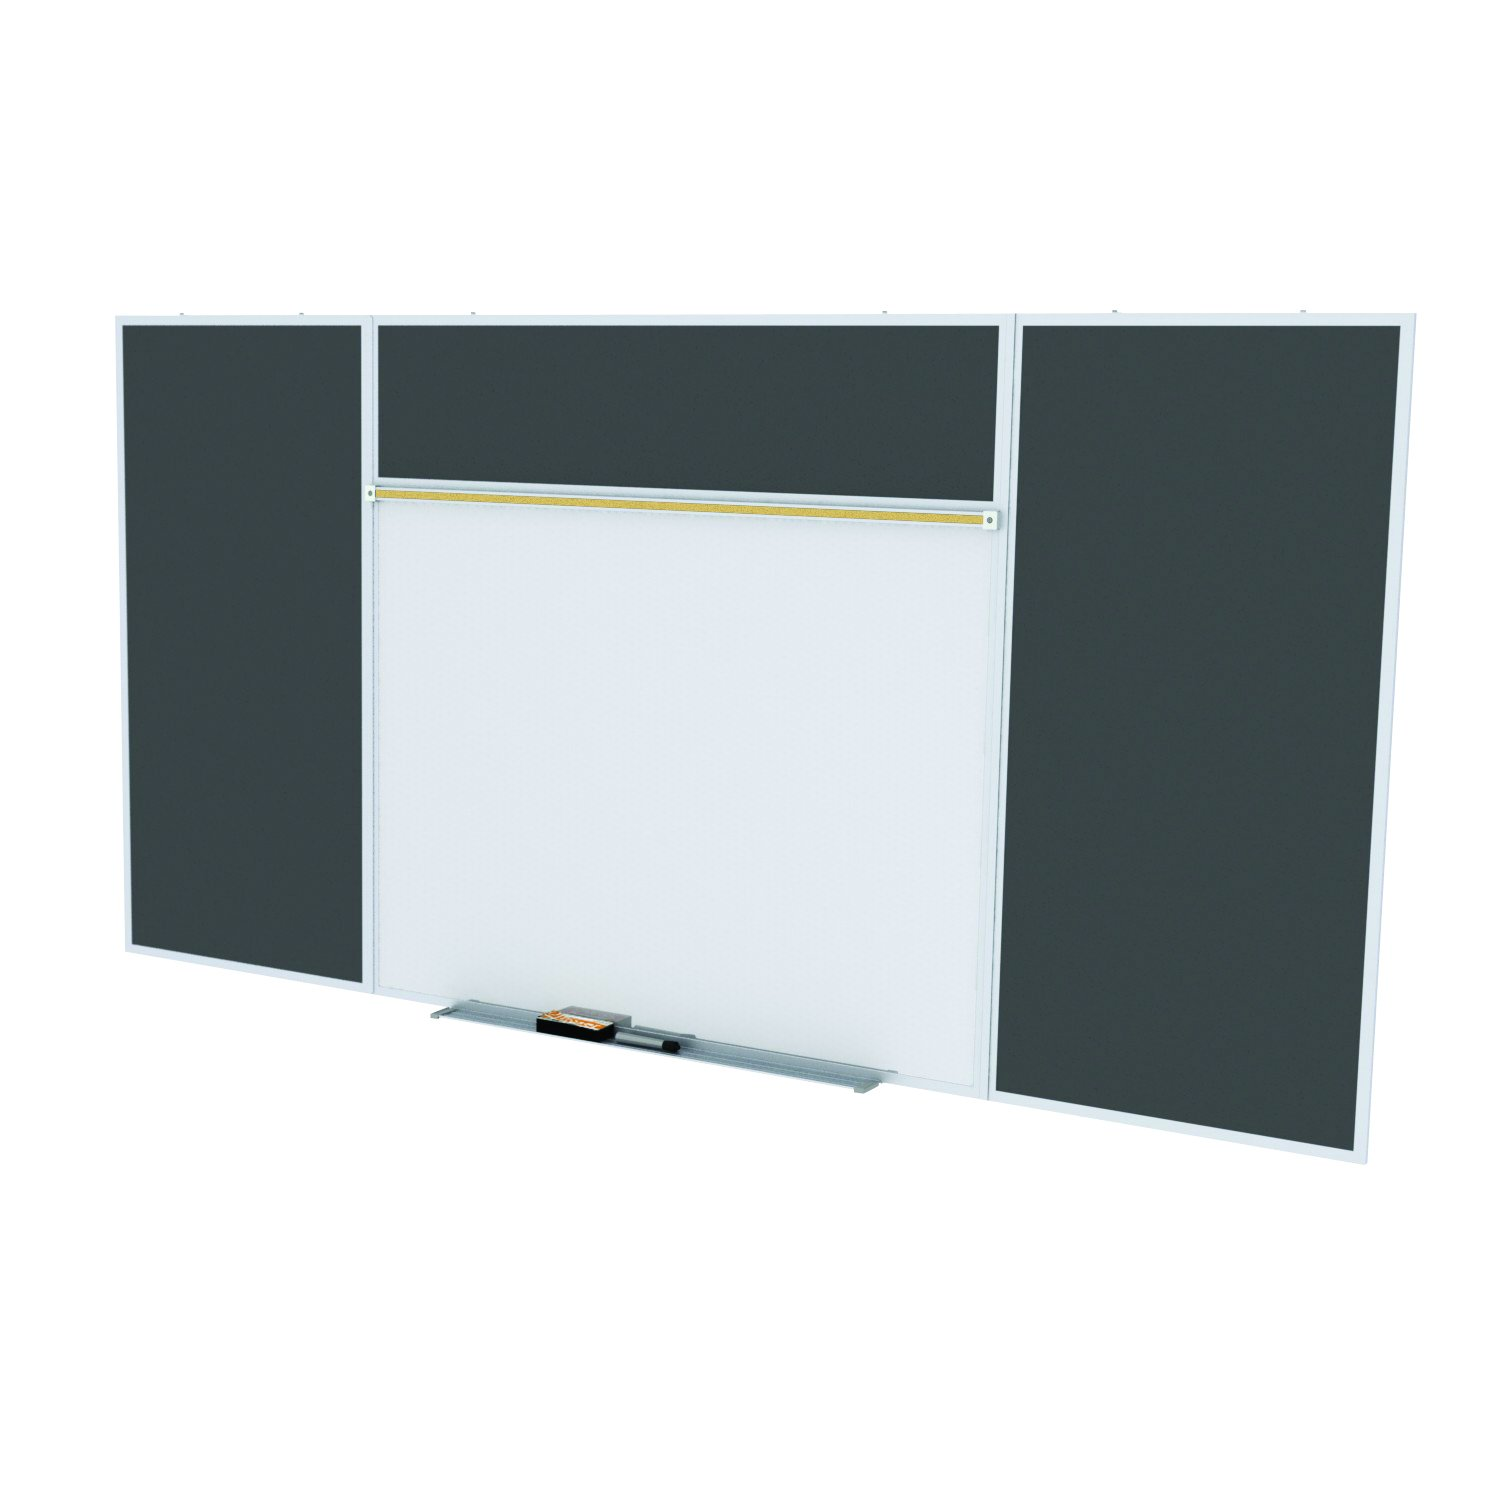 Ghent Style E 4 x 16 Feet Combination Board, Porcelain Magnetic Whiteboard and Recycled Rubber Bulletin Board, Black , Made in the USA